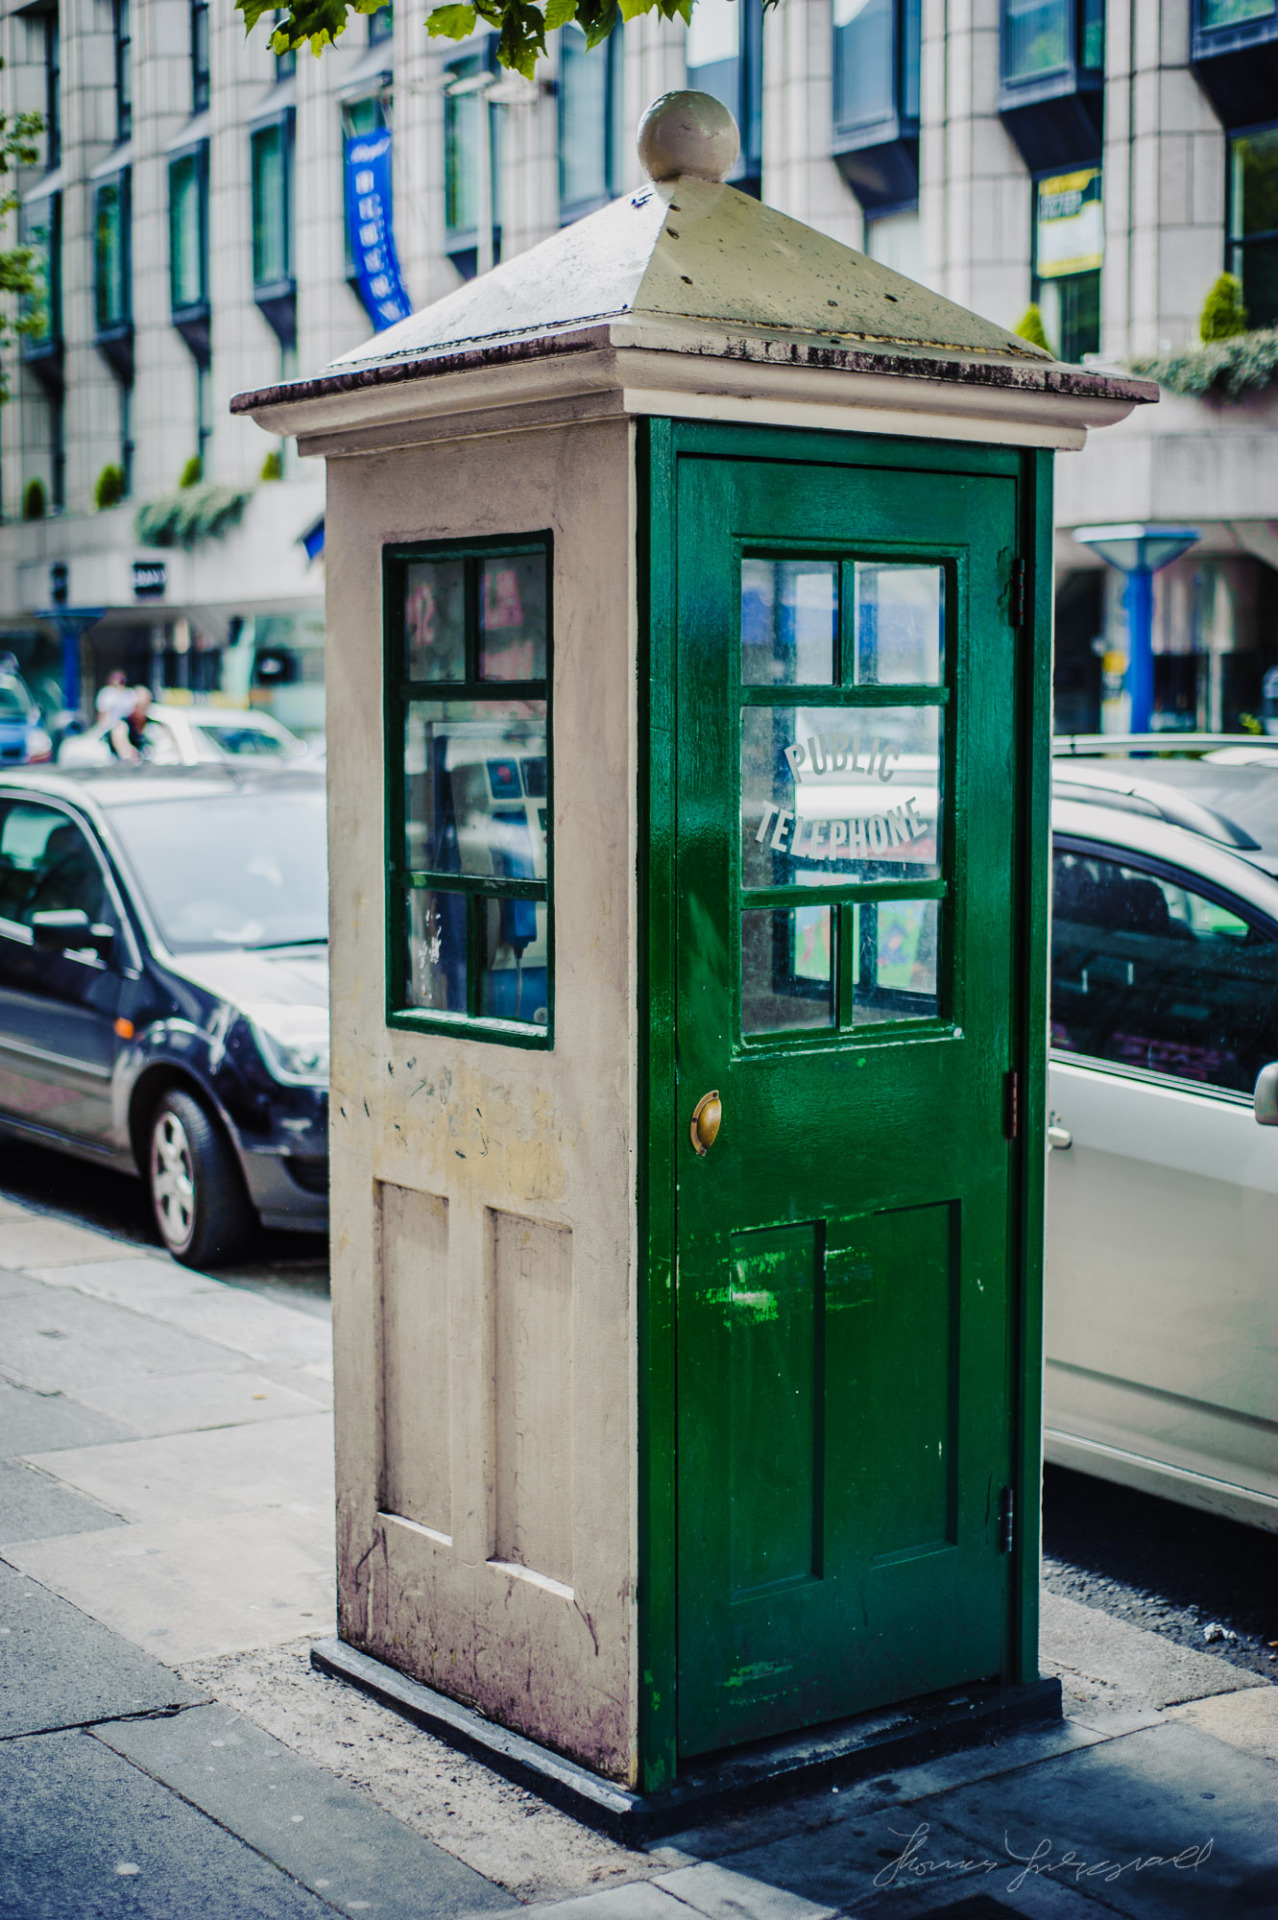 Dublin's answer to the Tardis